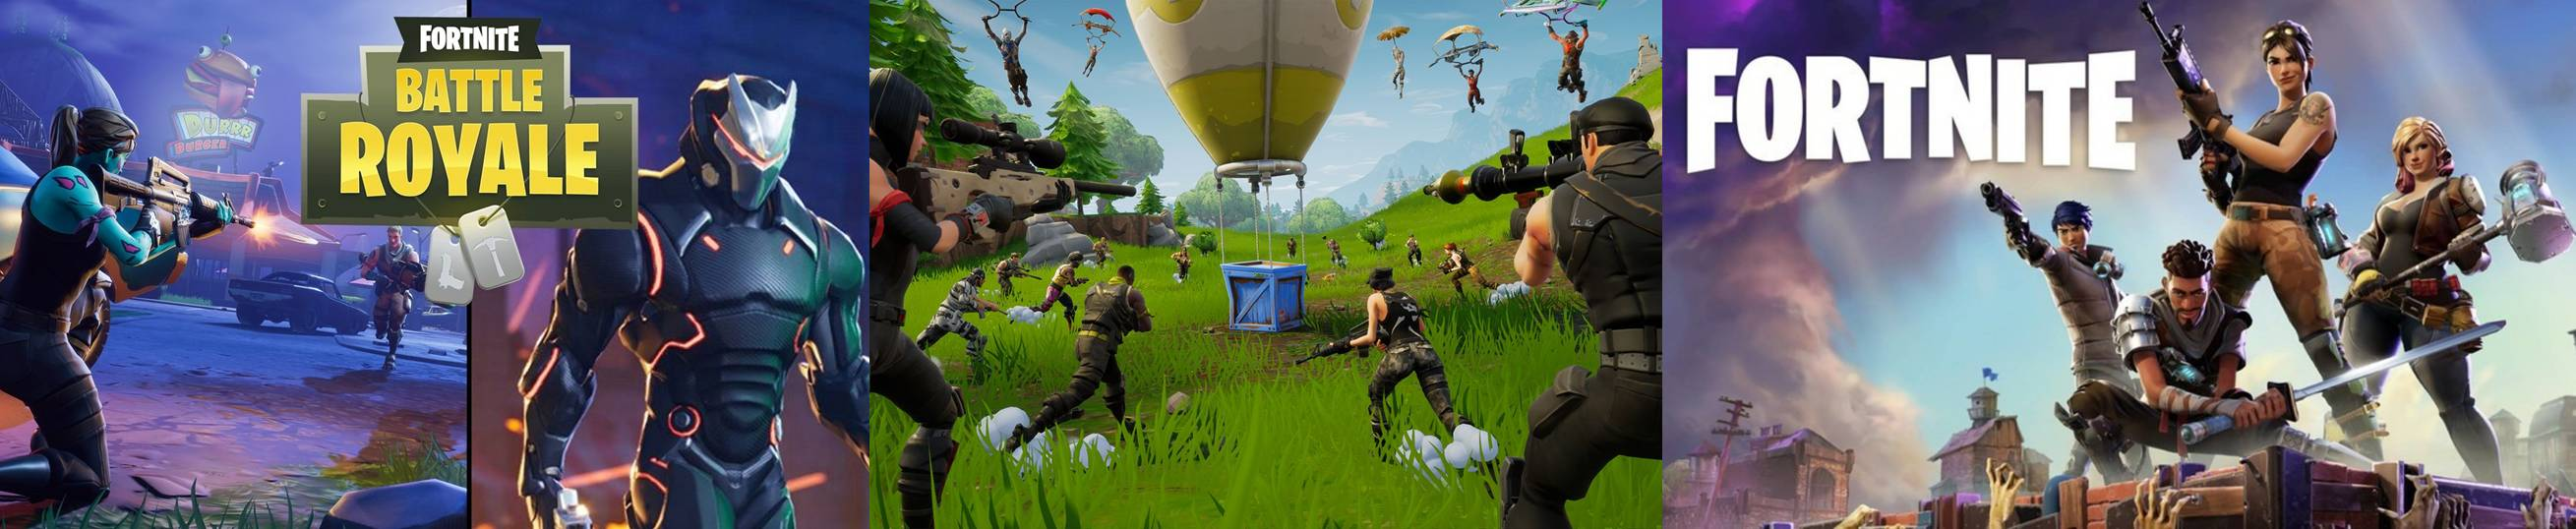 Fortnite video game birthday party in Chicago, Illinois